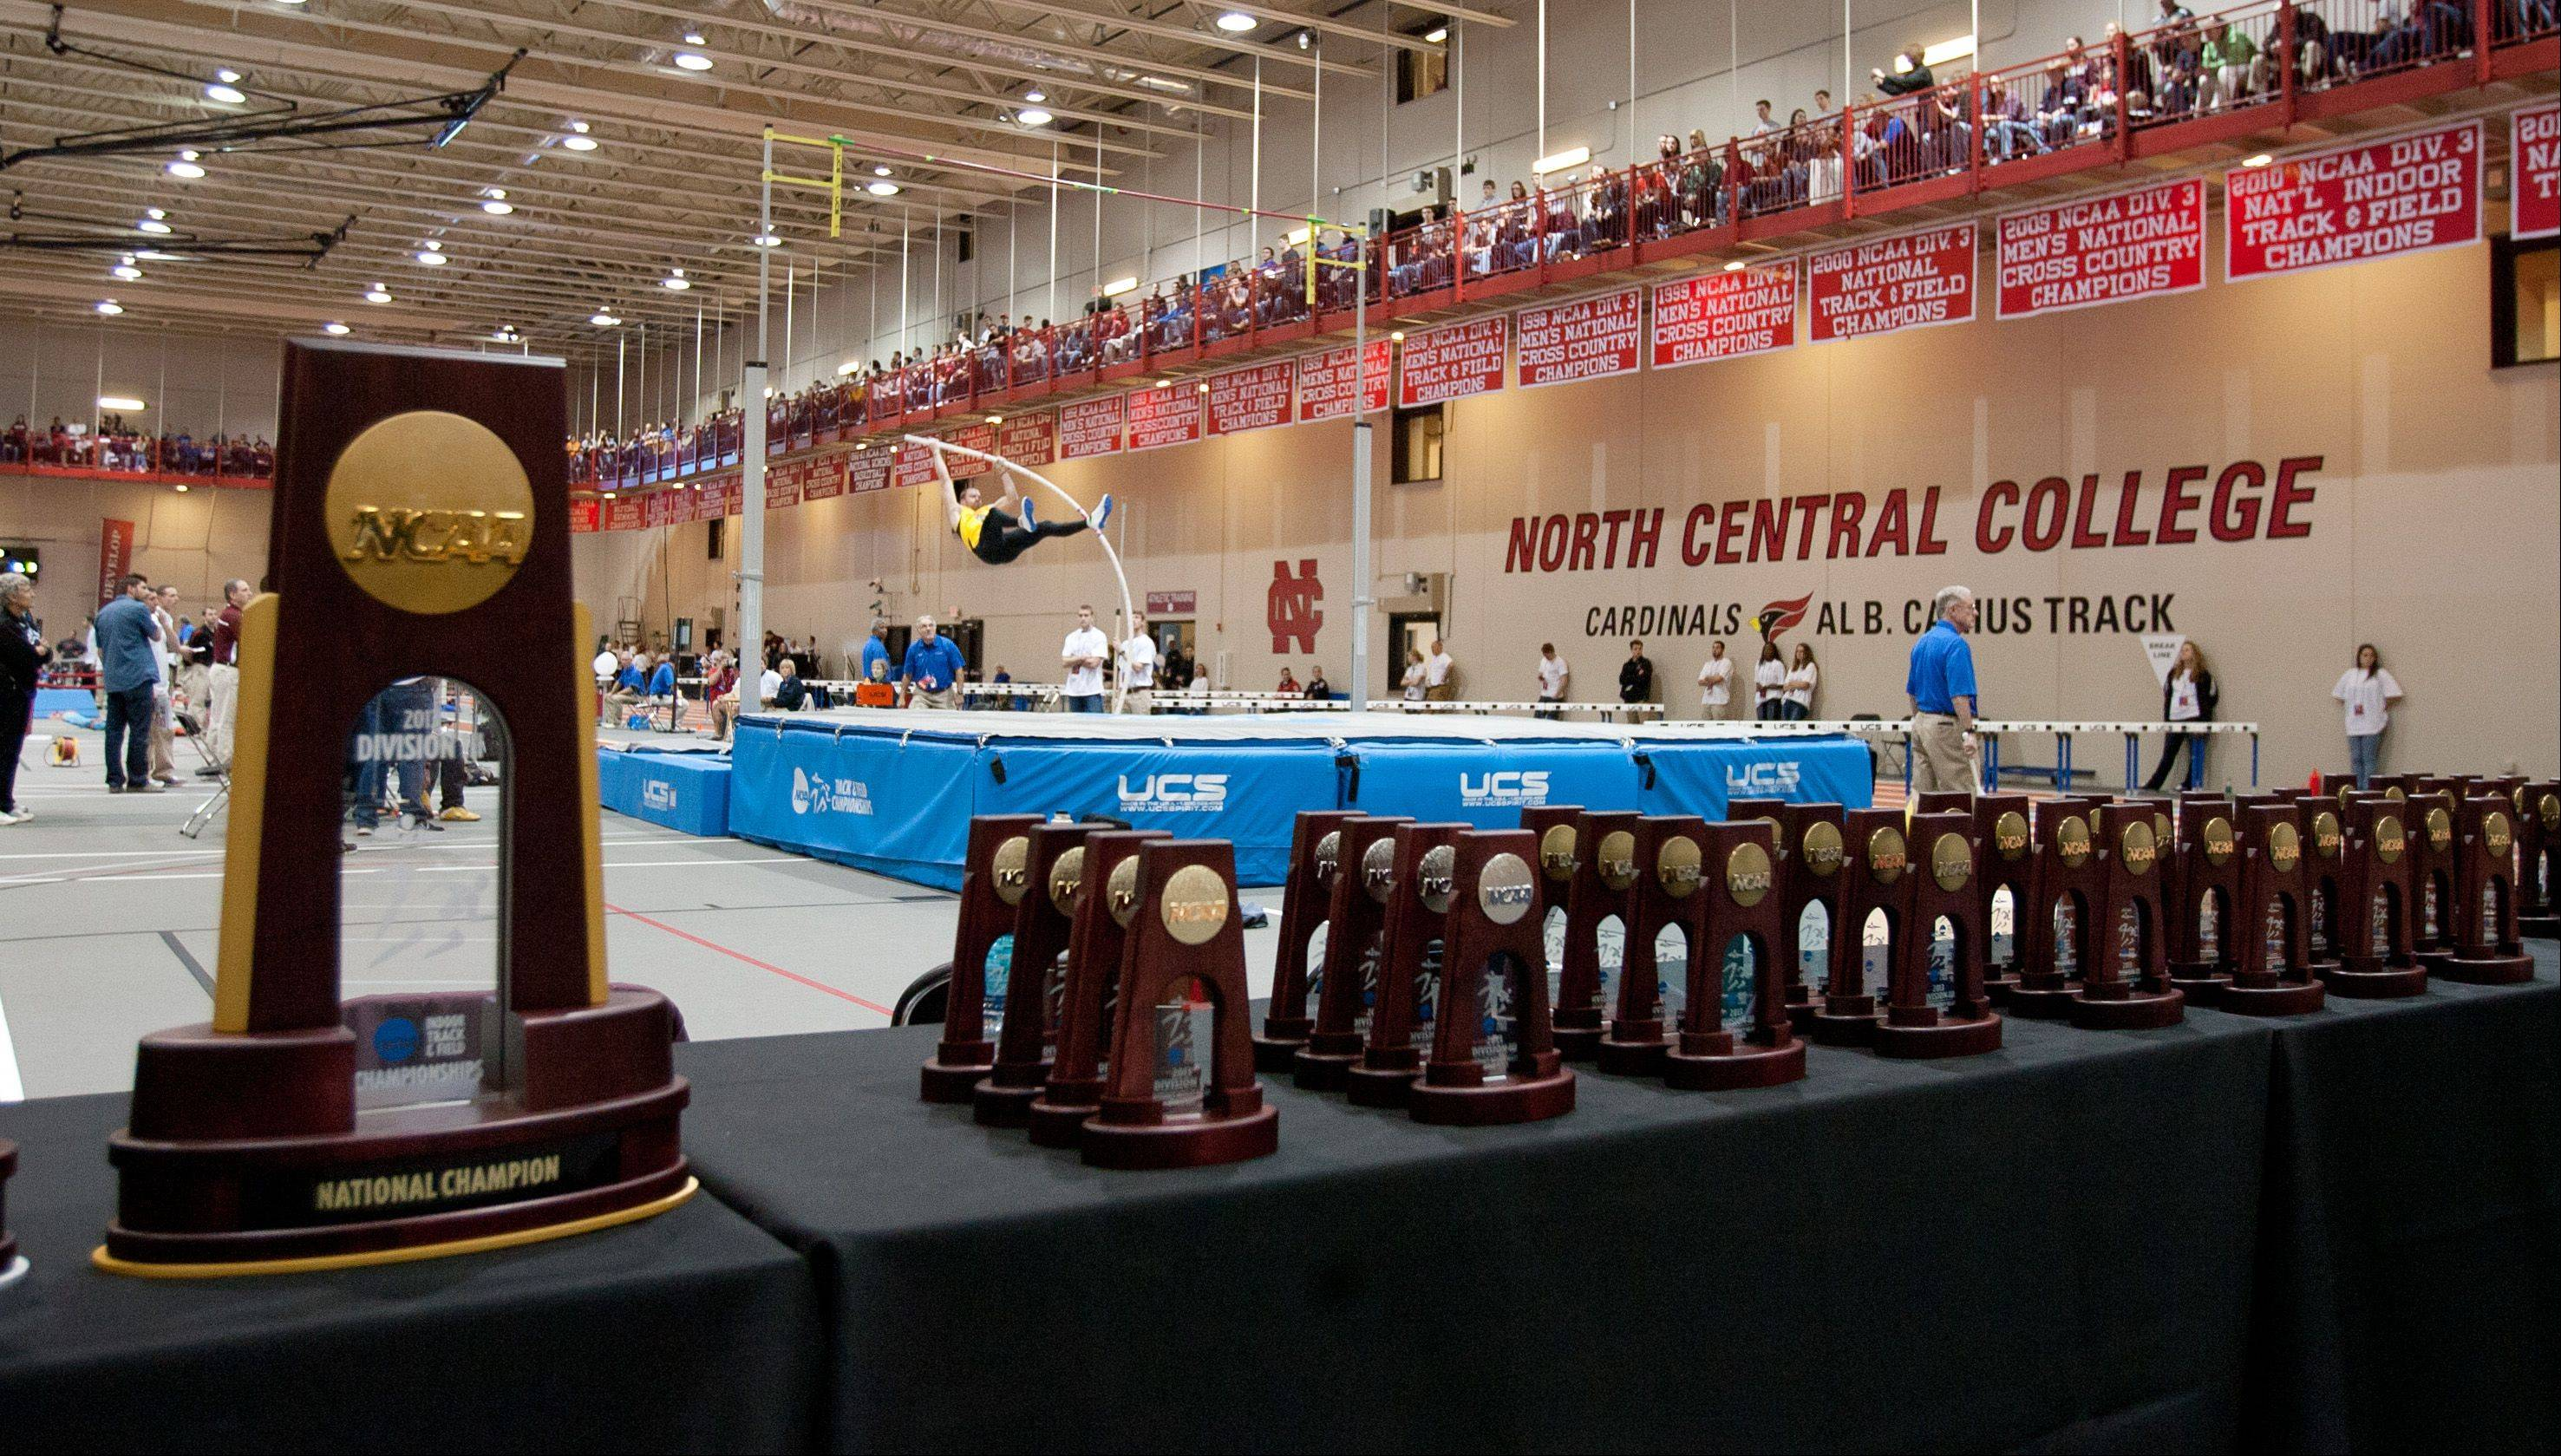 Trophies are waiting to be earned at the NCAA Division III Indoor Track and Field Championships at North Central College in Naperville.